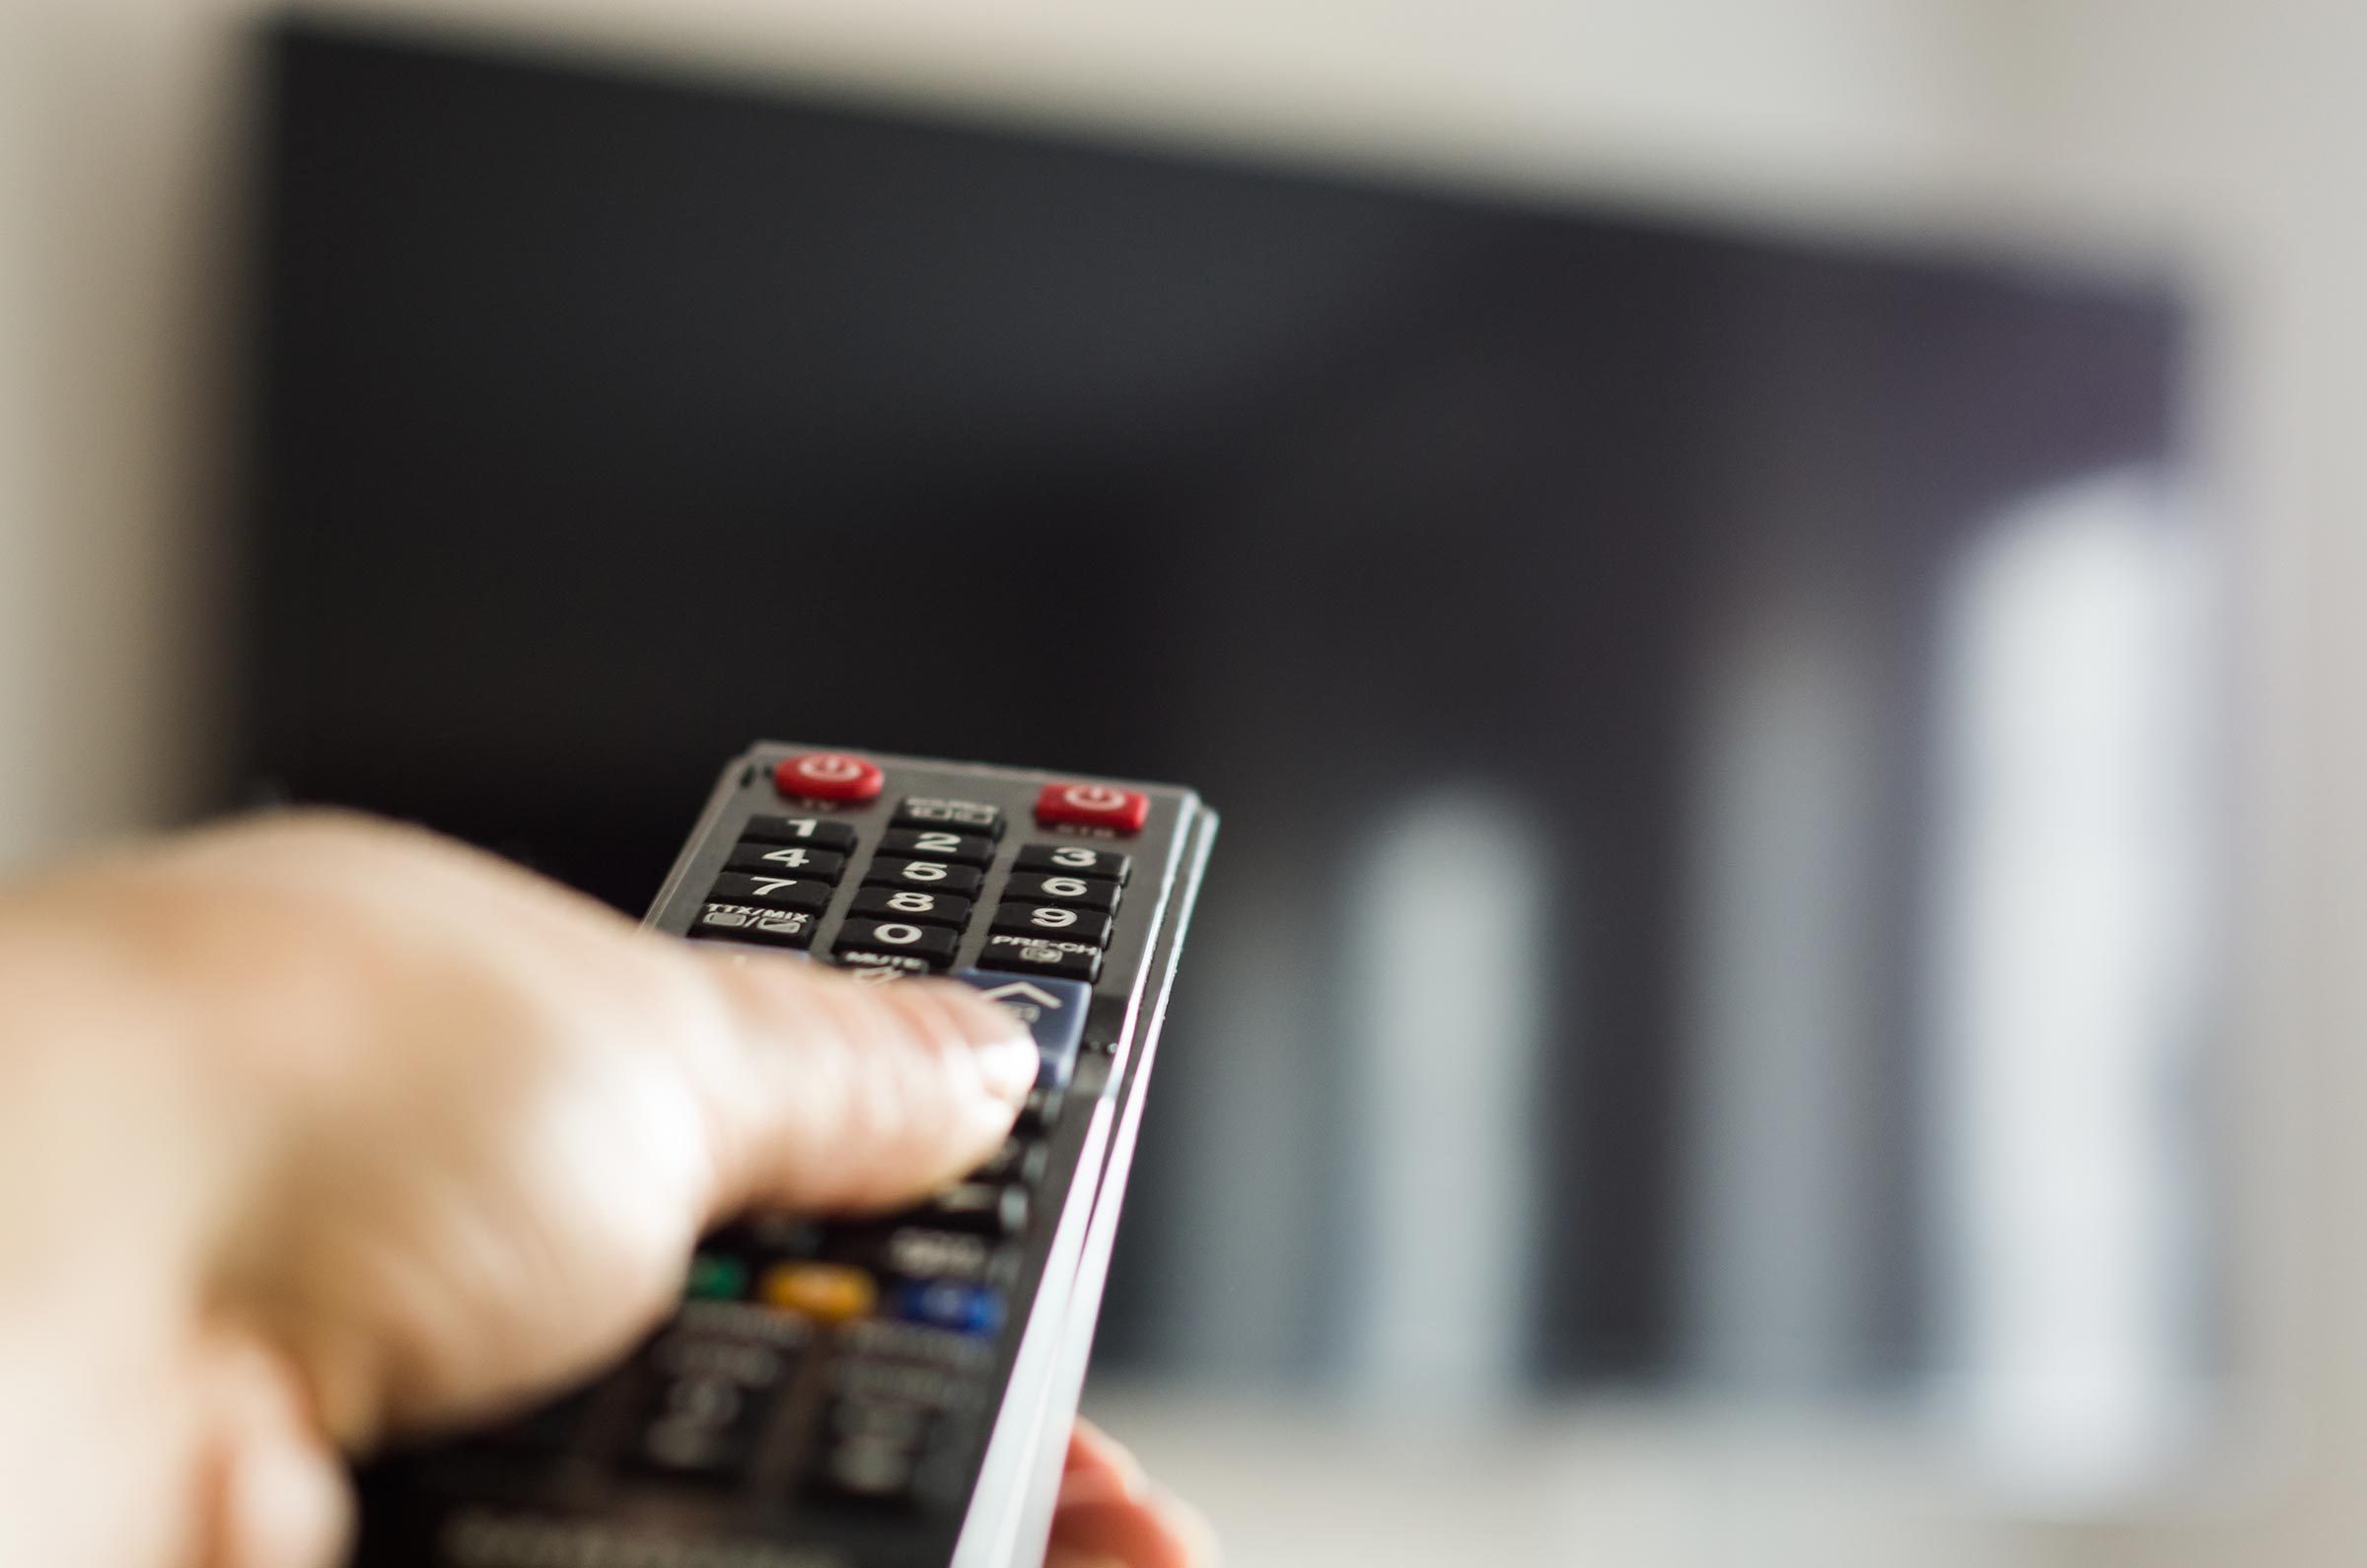 TV remote control, the hand with a remote control.